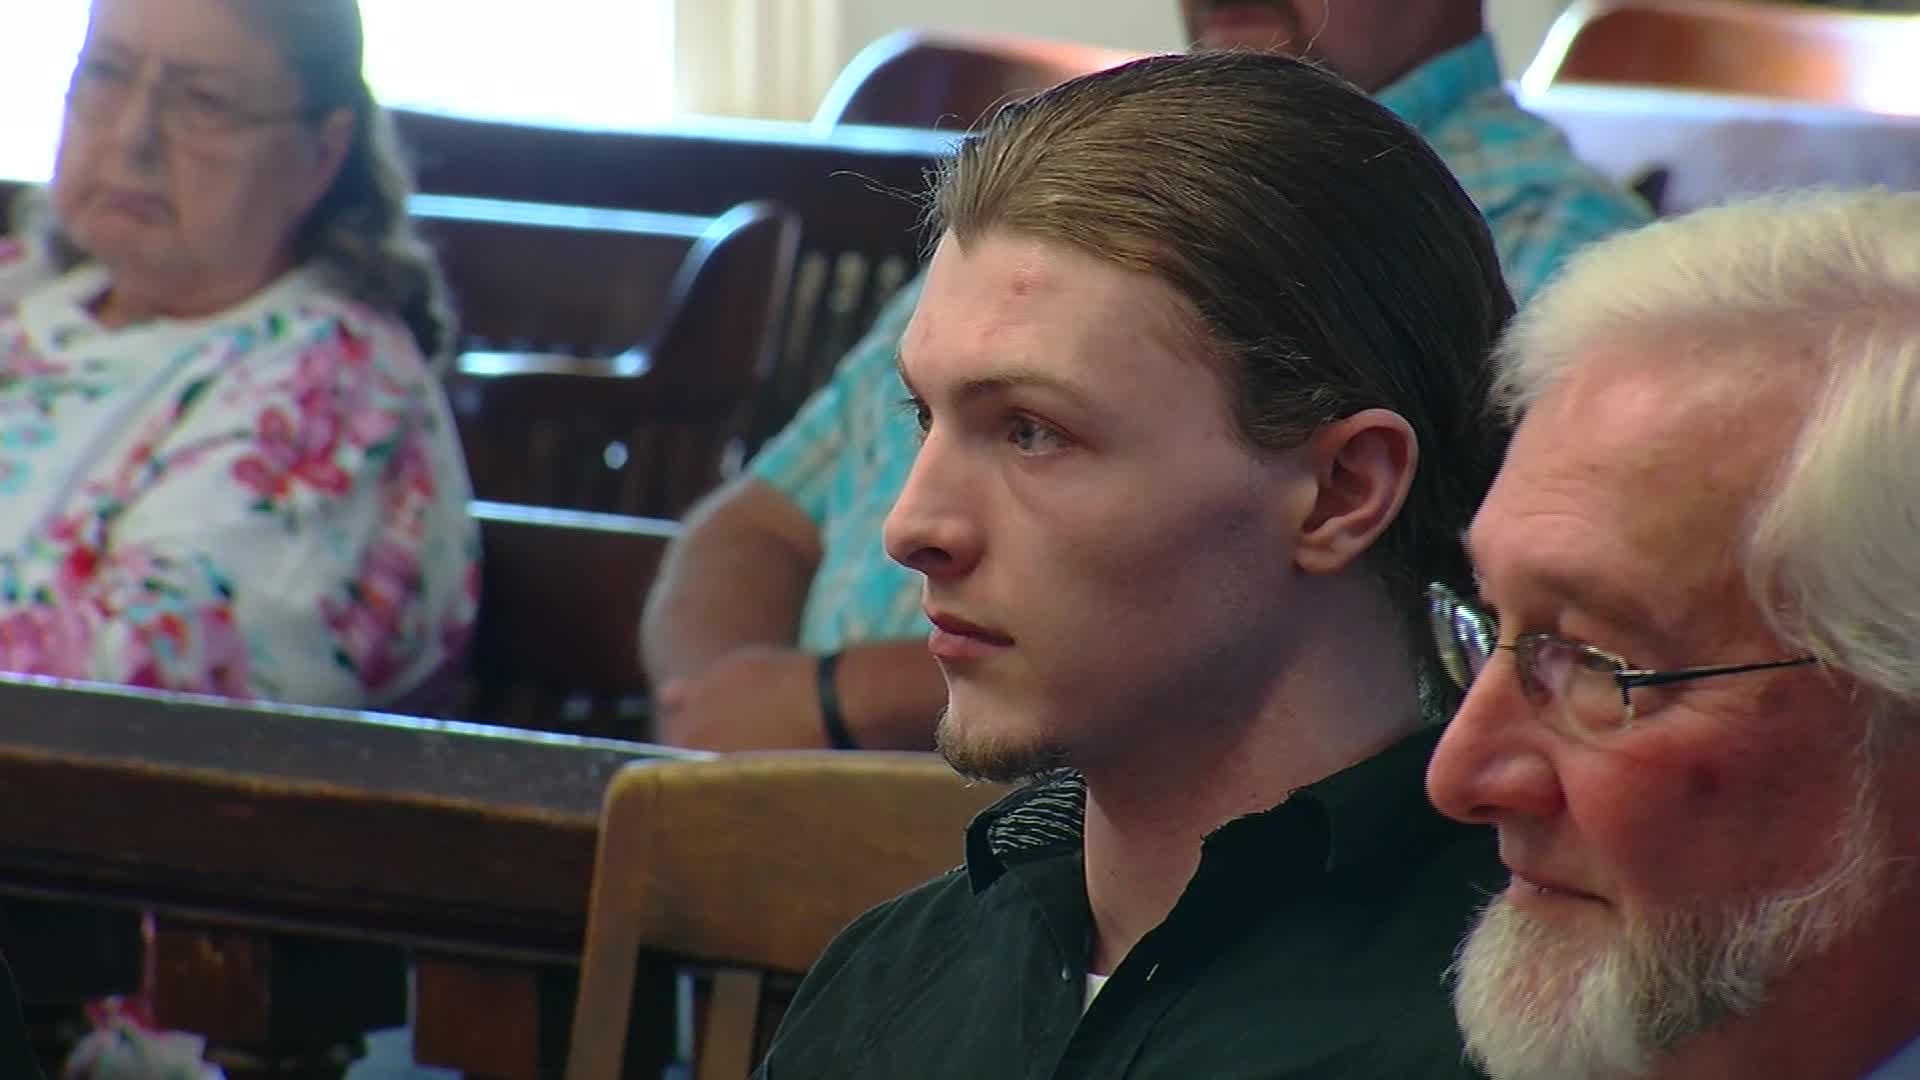 Pike Co massacre suspect appears in court